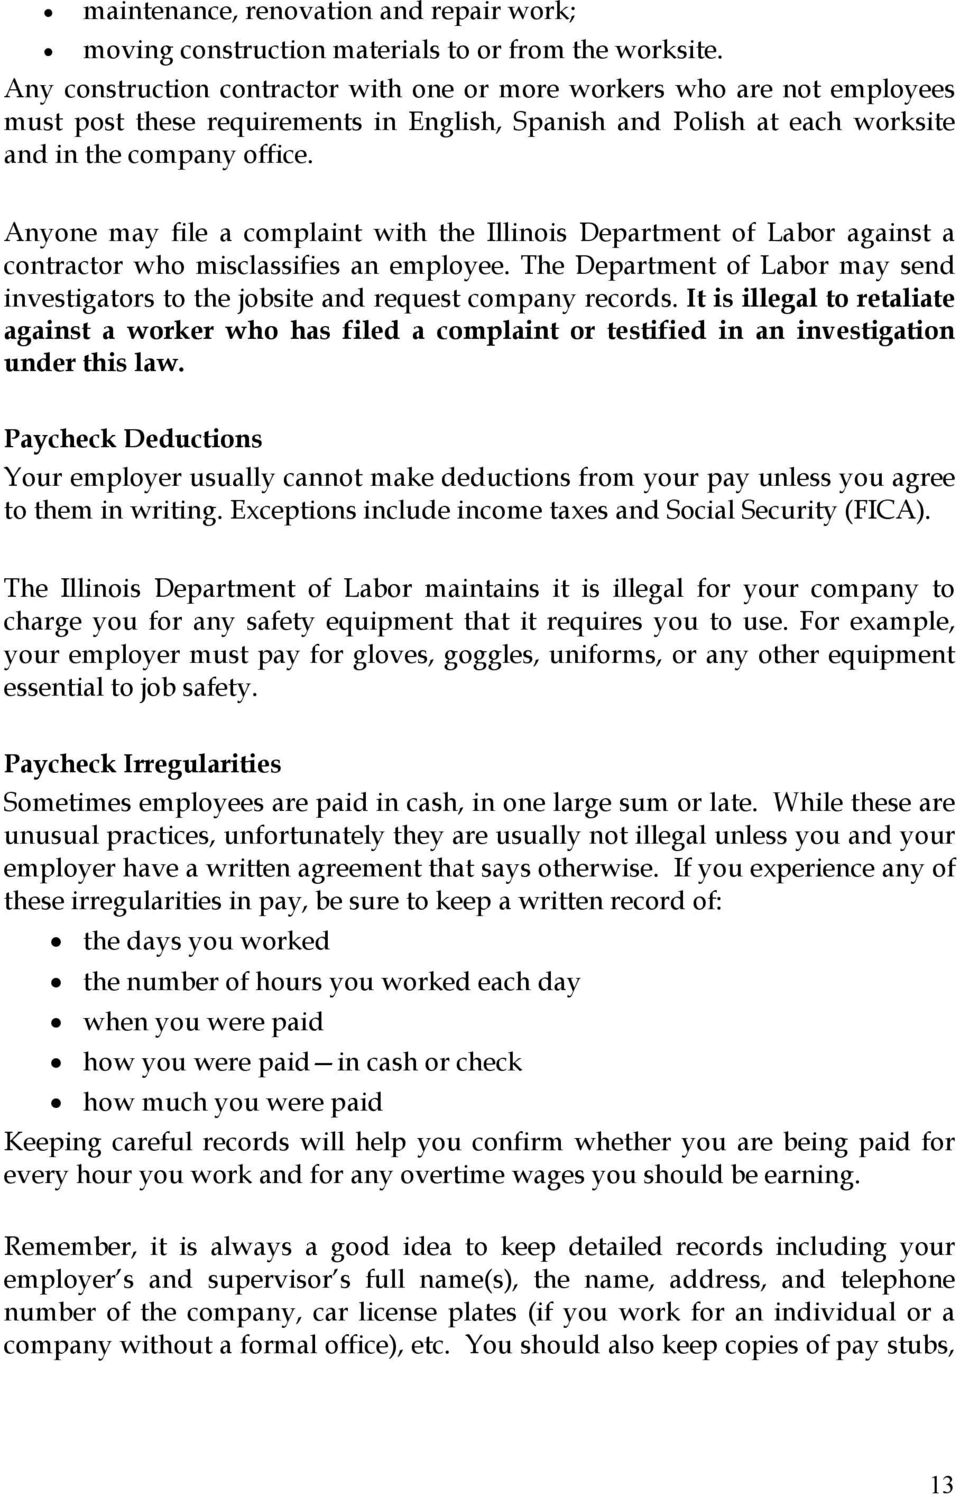 Anyone may file a complaint with the Illinois Department of Labor against a contractor who misclassifies an employee.